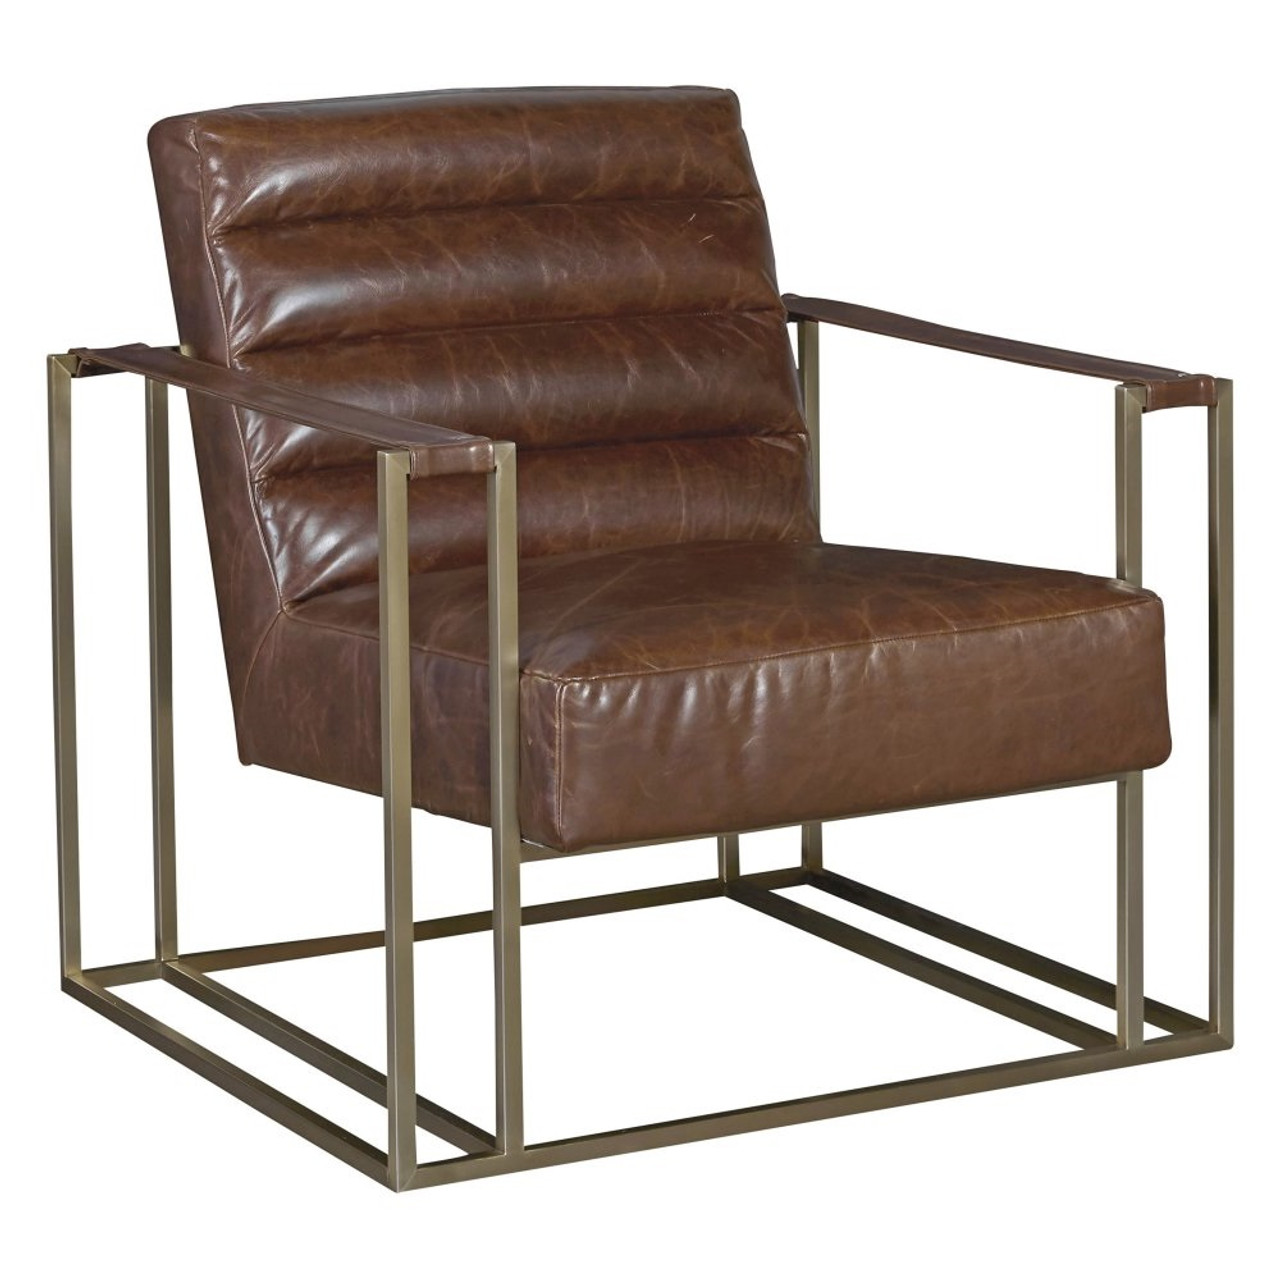 Superb Jensen Modern Brown Leather Club Chair